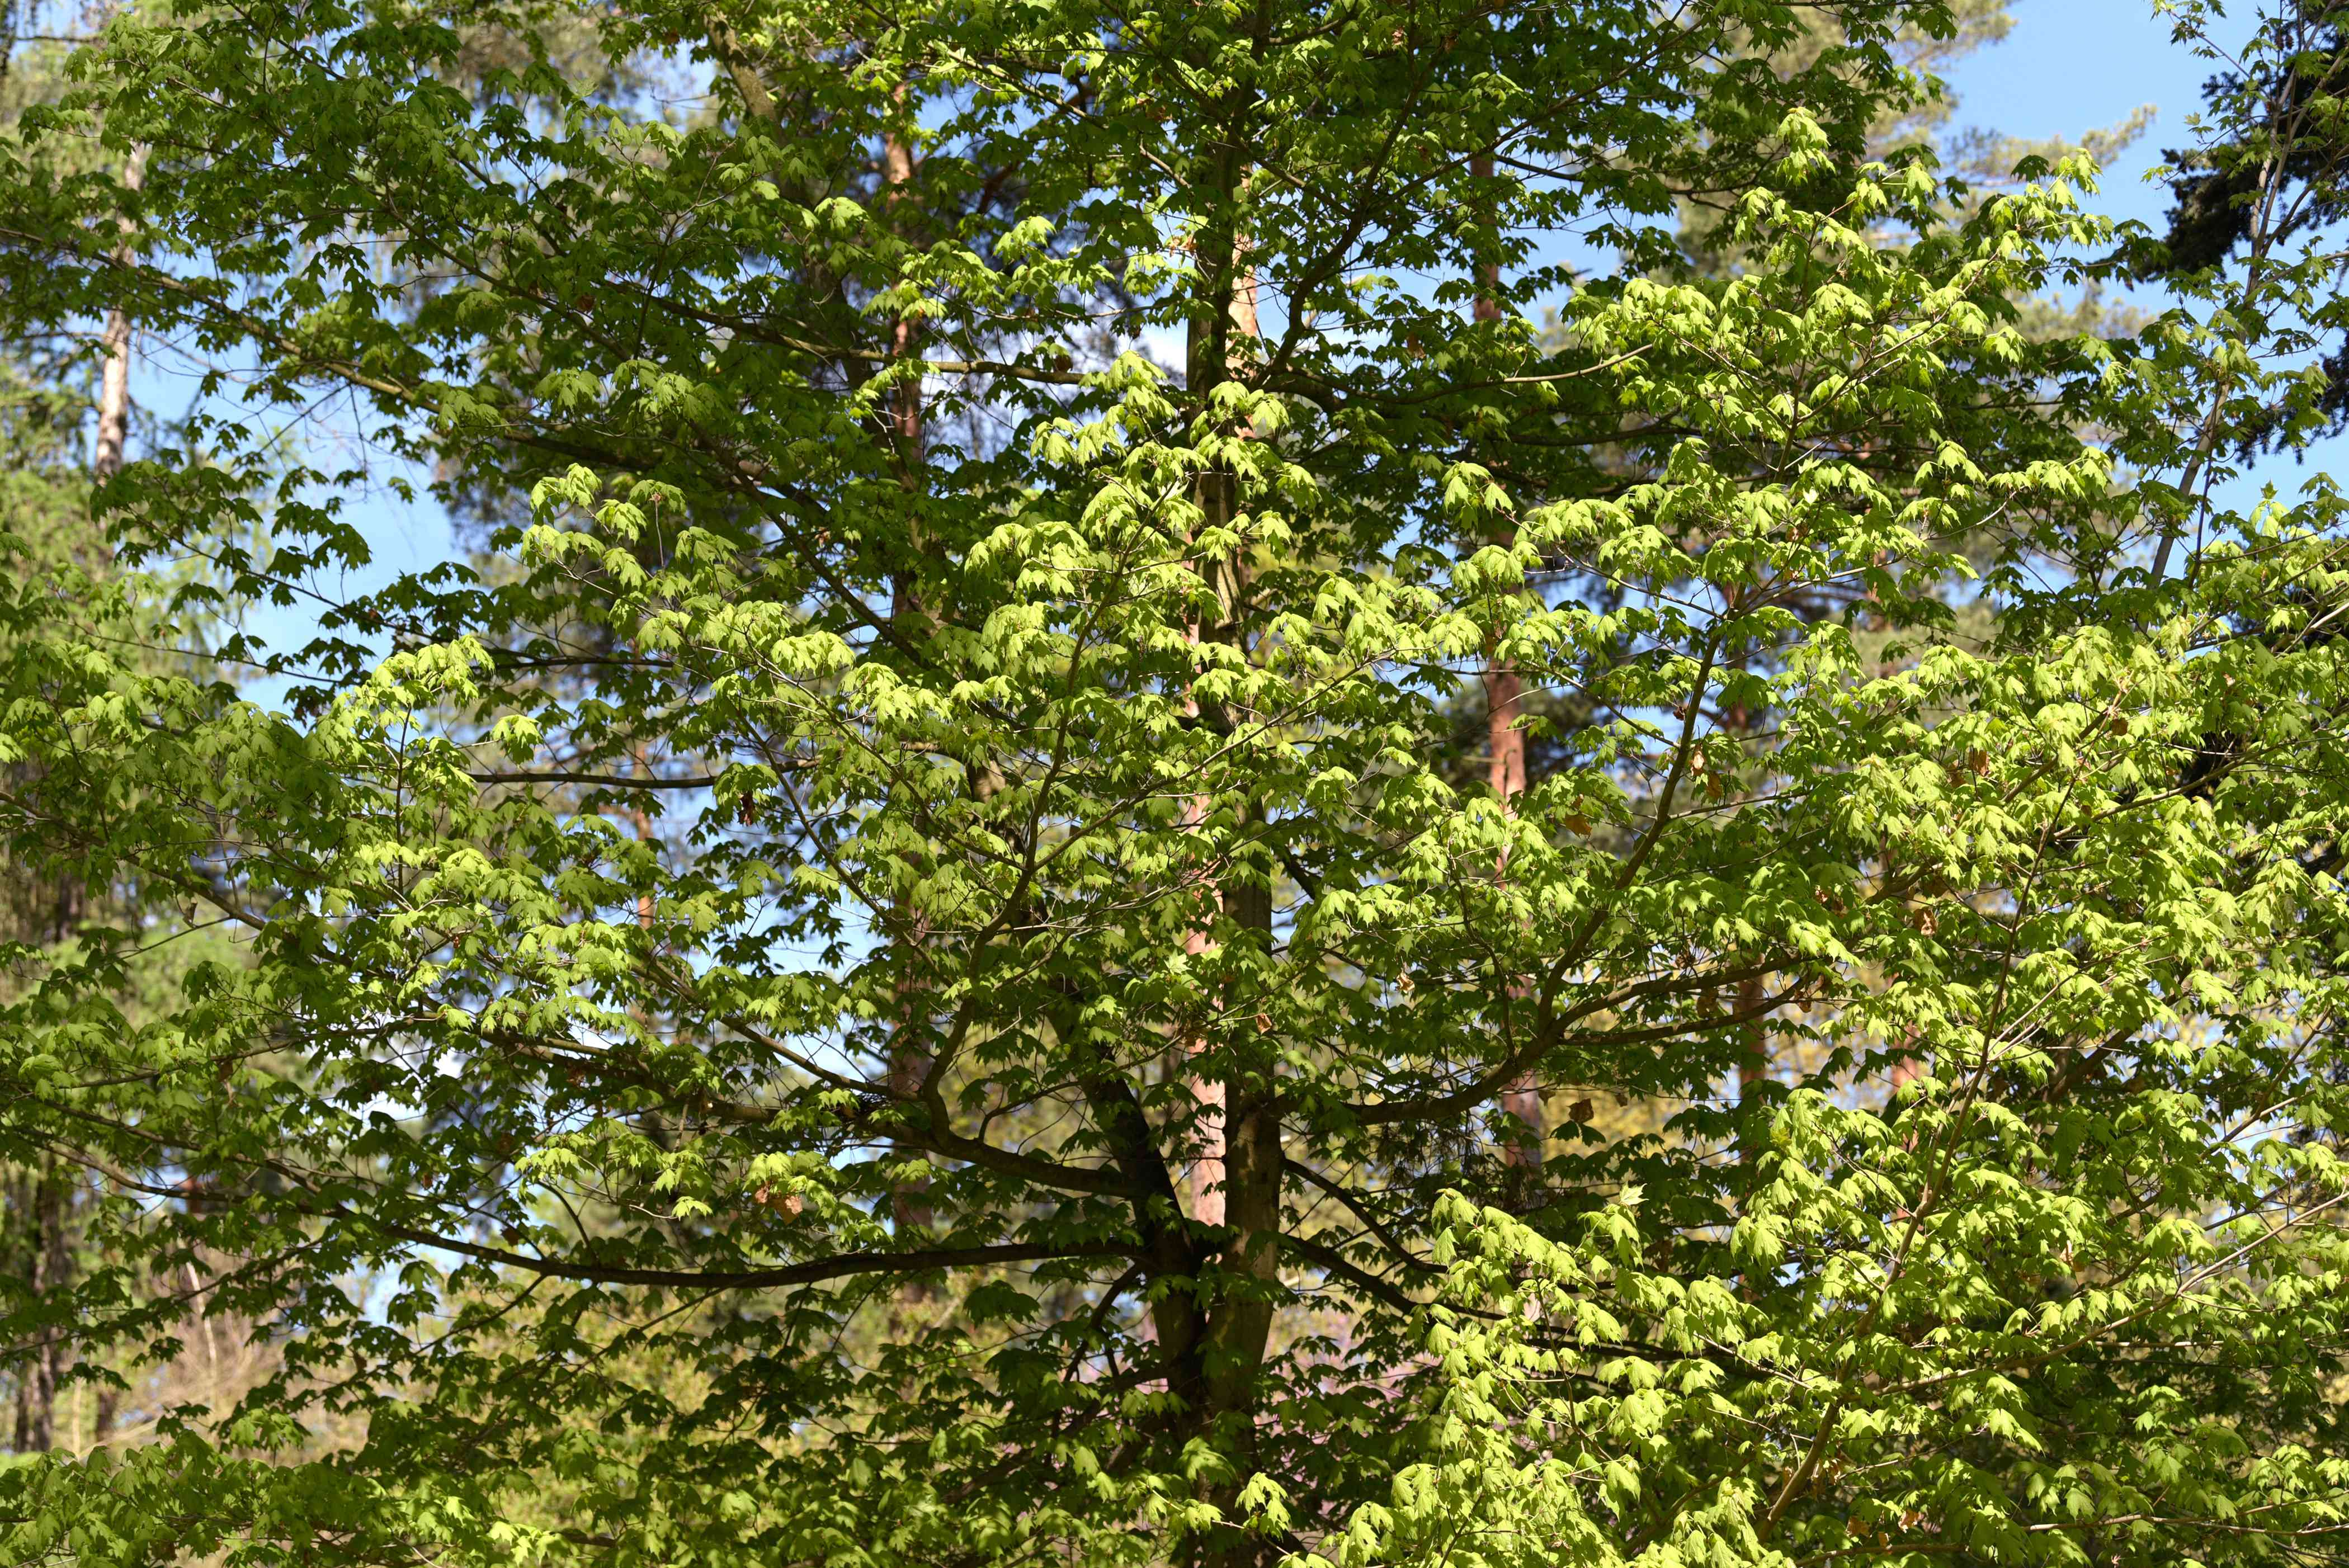 Sugar maple tree with long branches and bright green leaves in sunlight